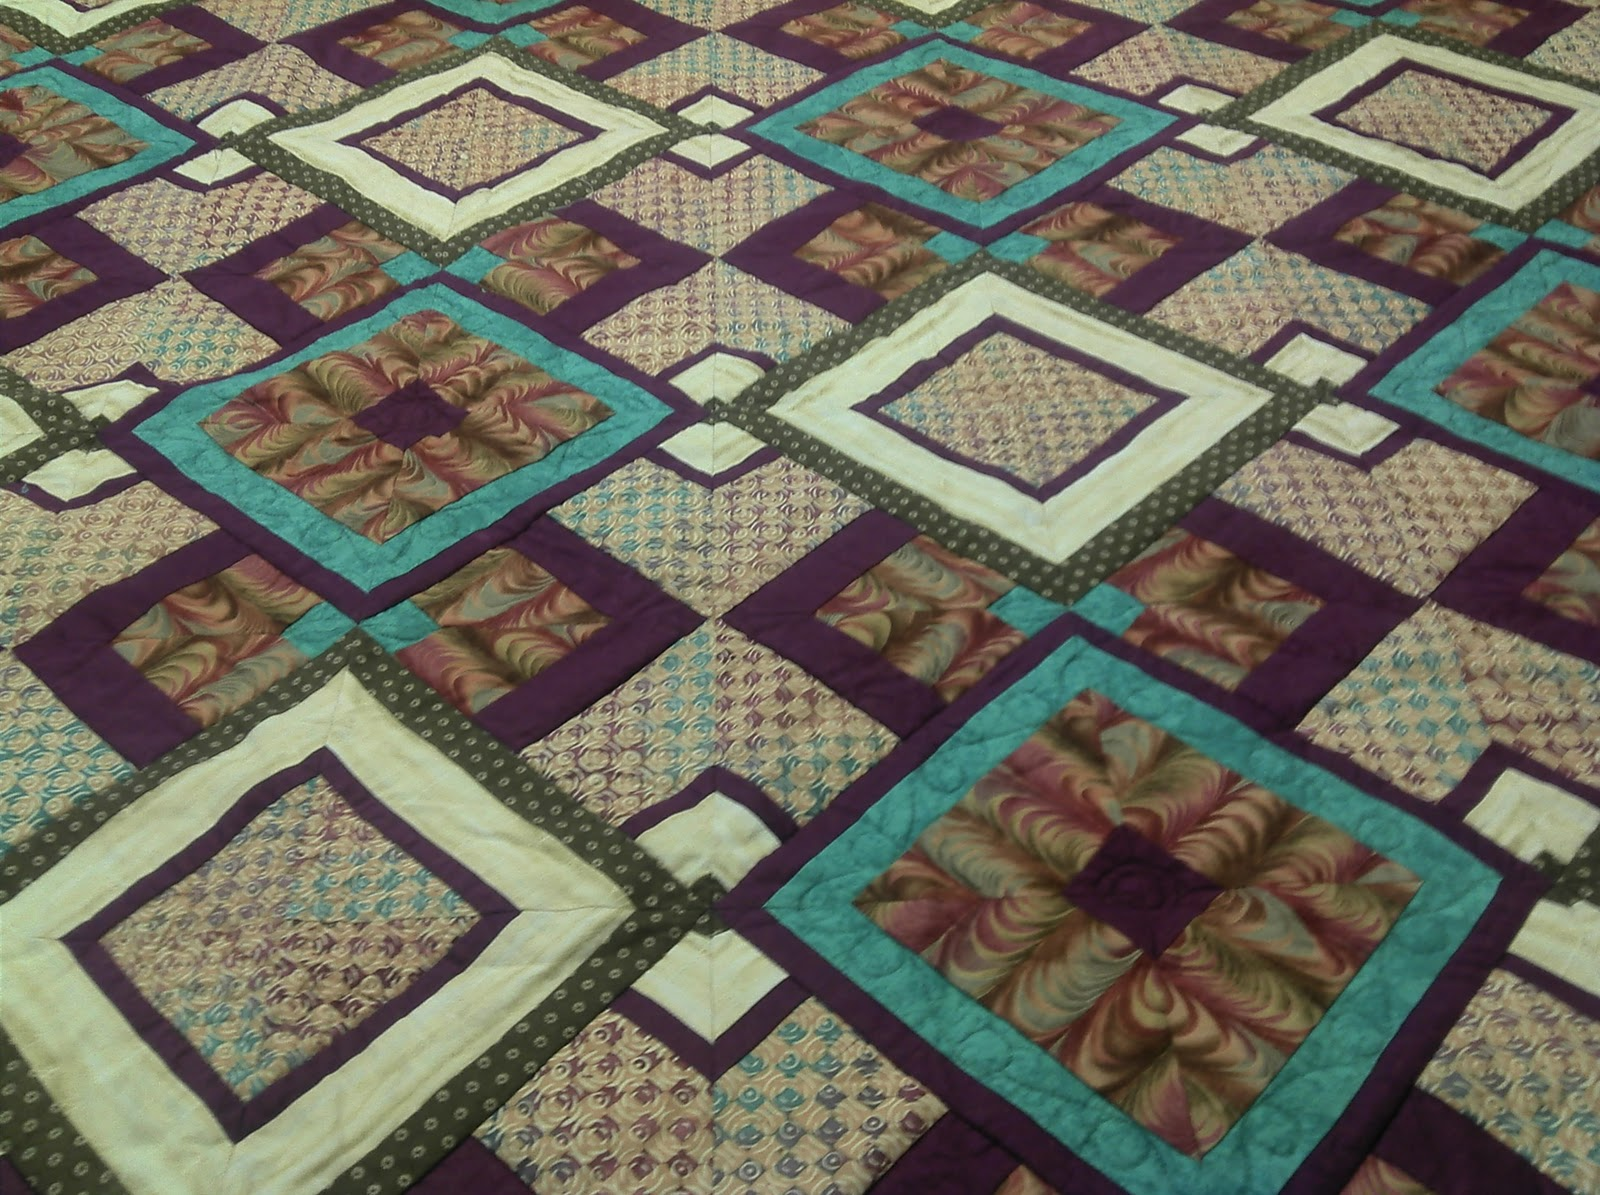 1000+ images about 1 Fabric Quilts on Pinterest Quilt, Fabrics and Border print